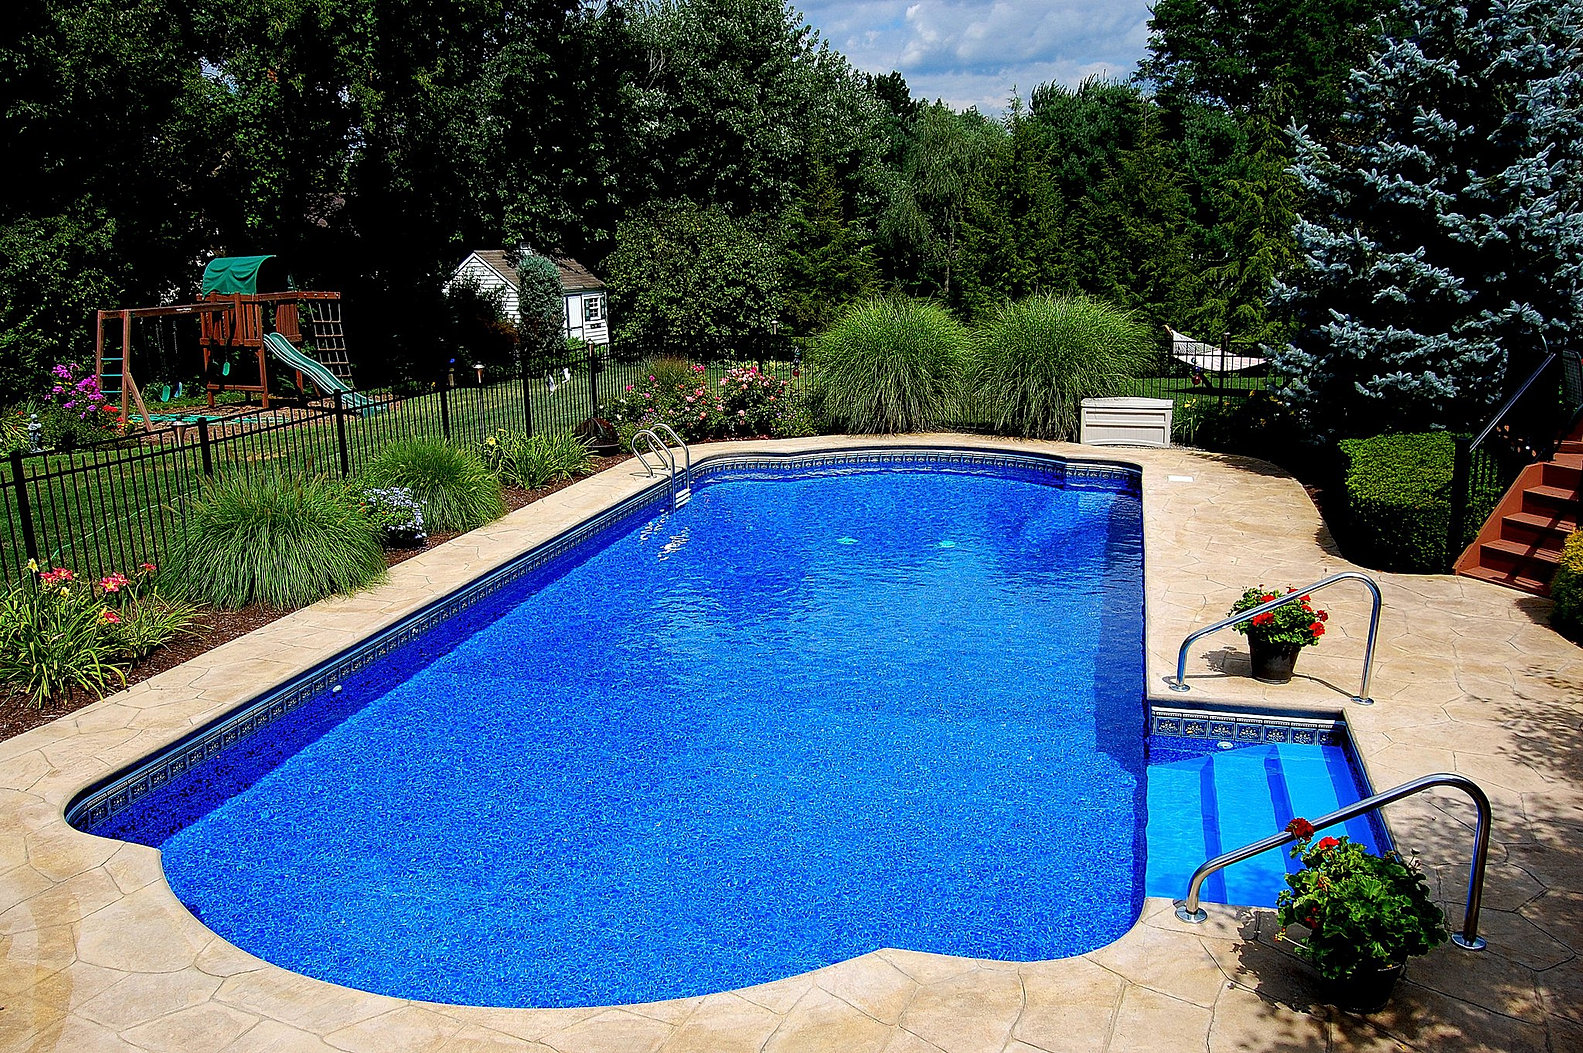 Delgallo country pools inground pools and swimming pools - Cheap inground swimming pool liners ...